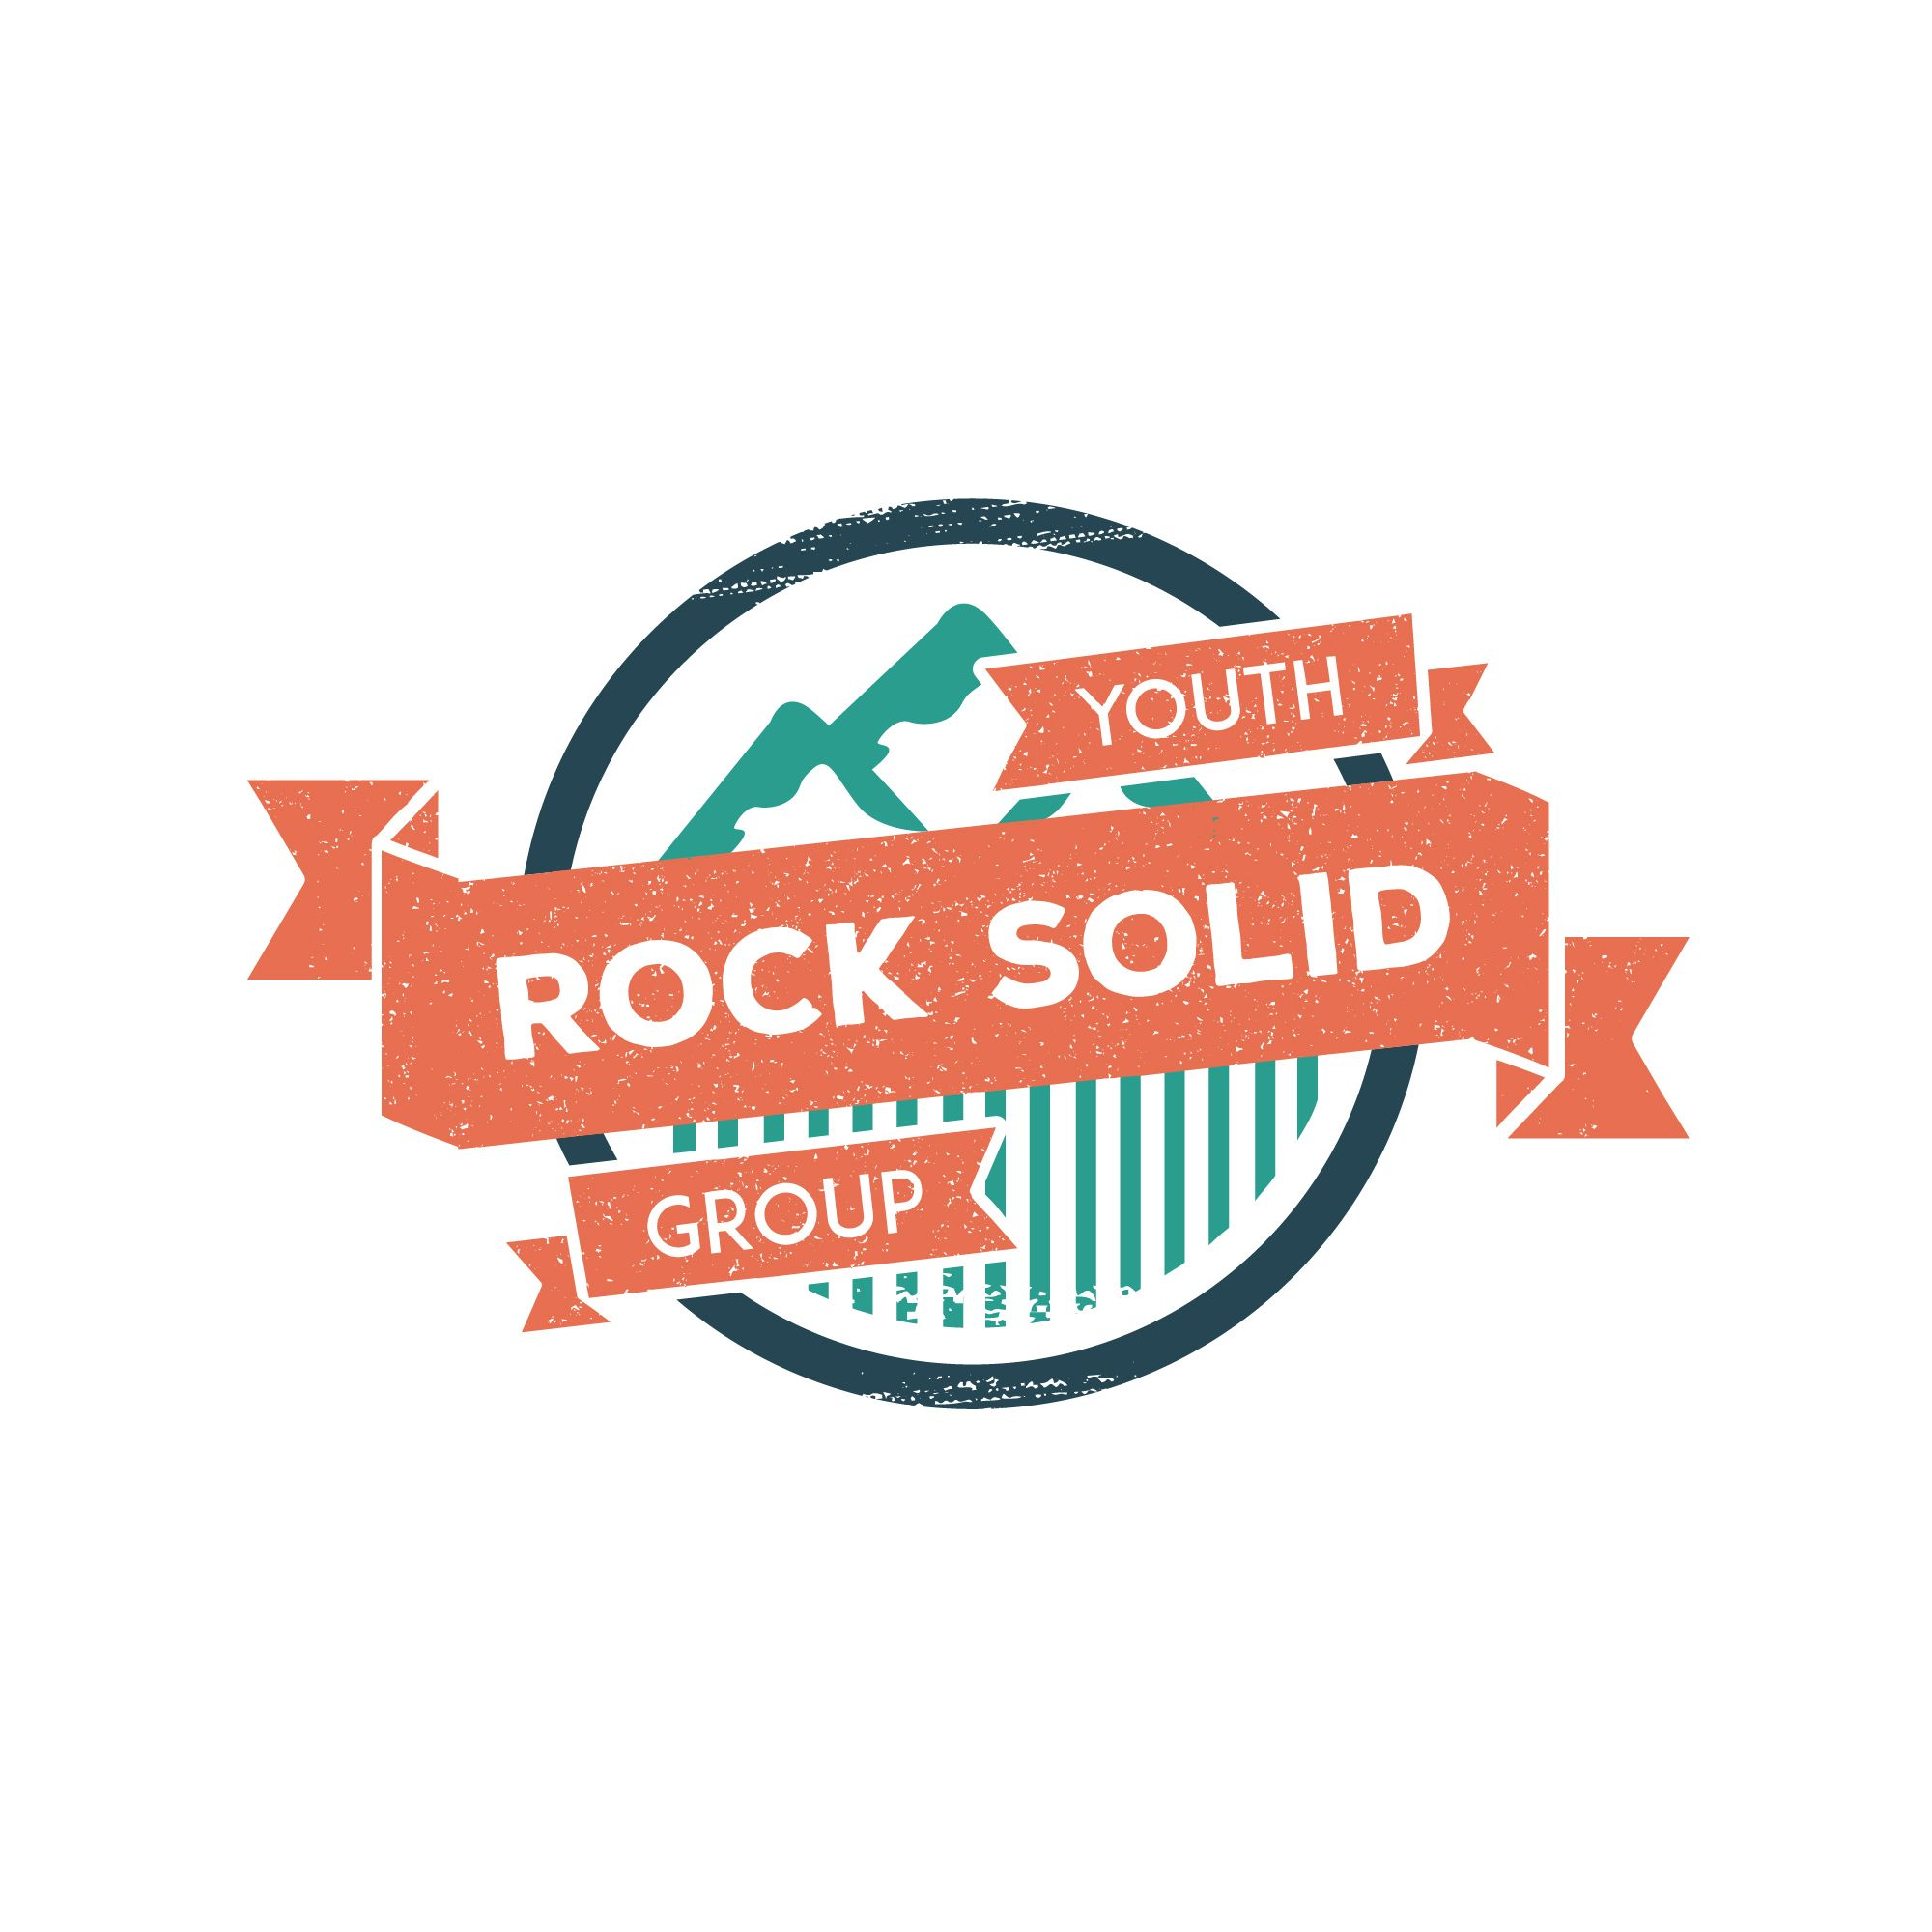 rock solid youth group youth group logos youth group logo rh pinterest com youth group logos and names youth group logo design